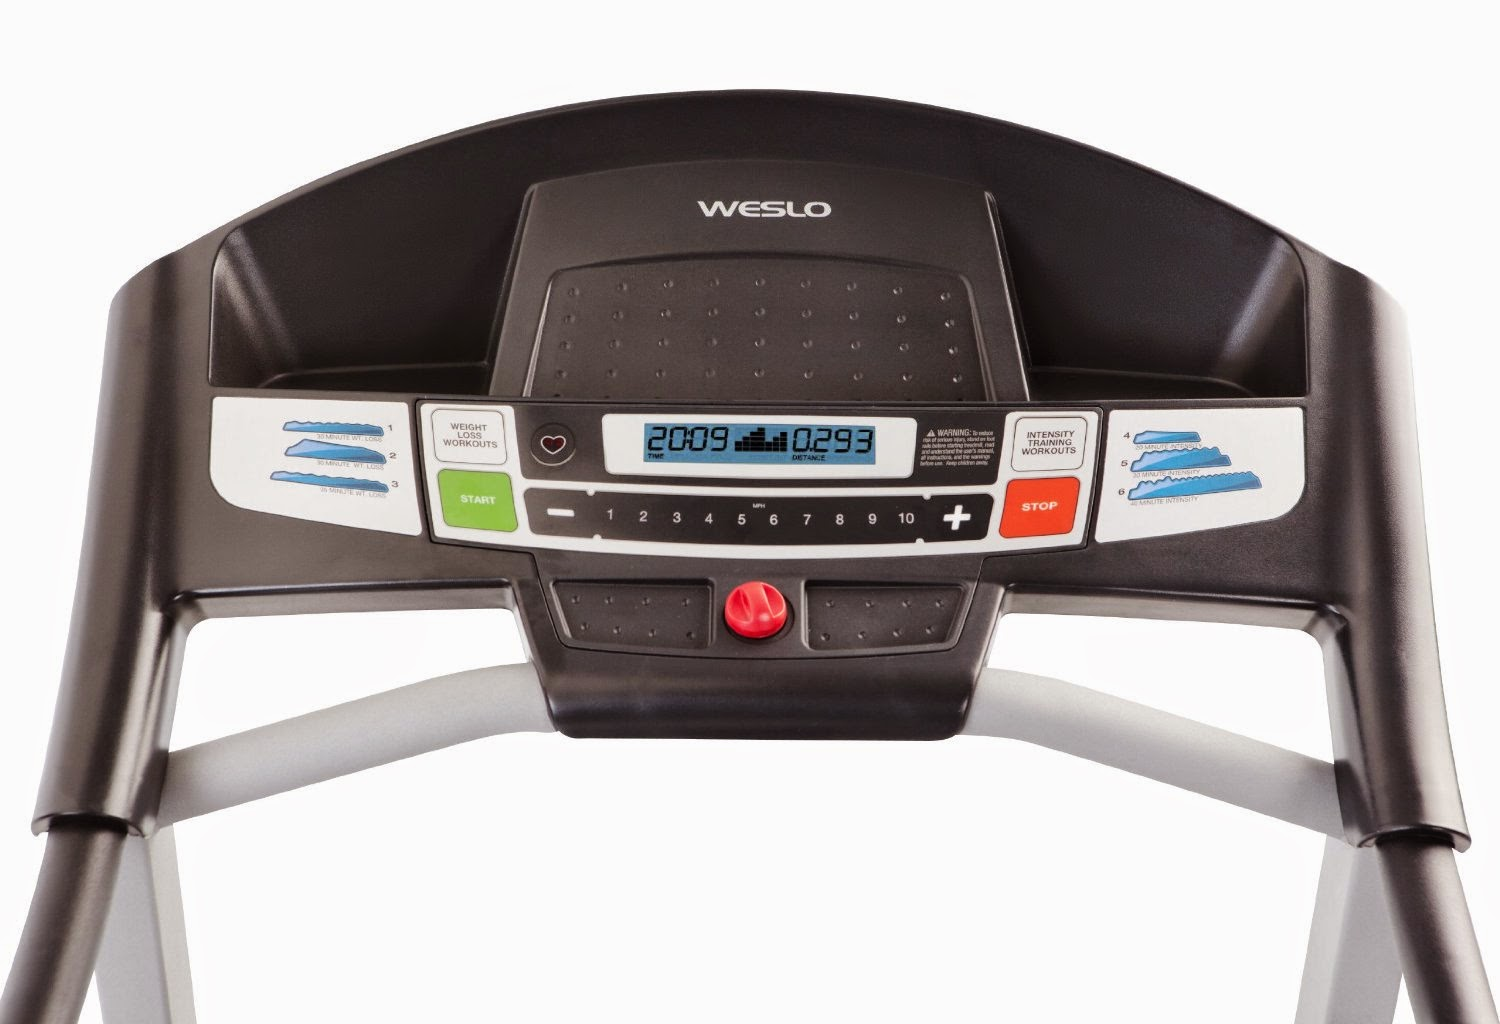 Weslo Cadence G 5.9 Console, blue-tinted LCD display shows workout stats including time, distance, speed, pulse, calories, with touch button controls